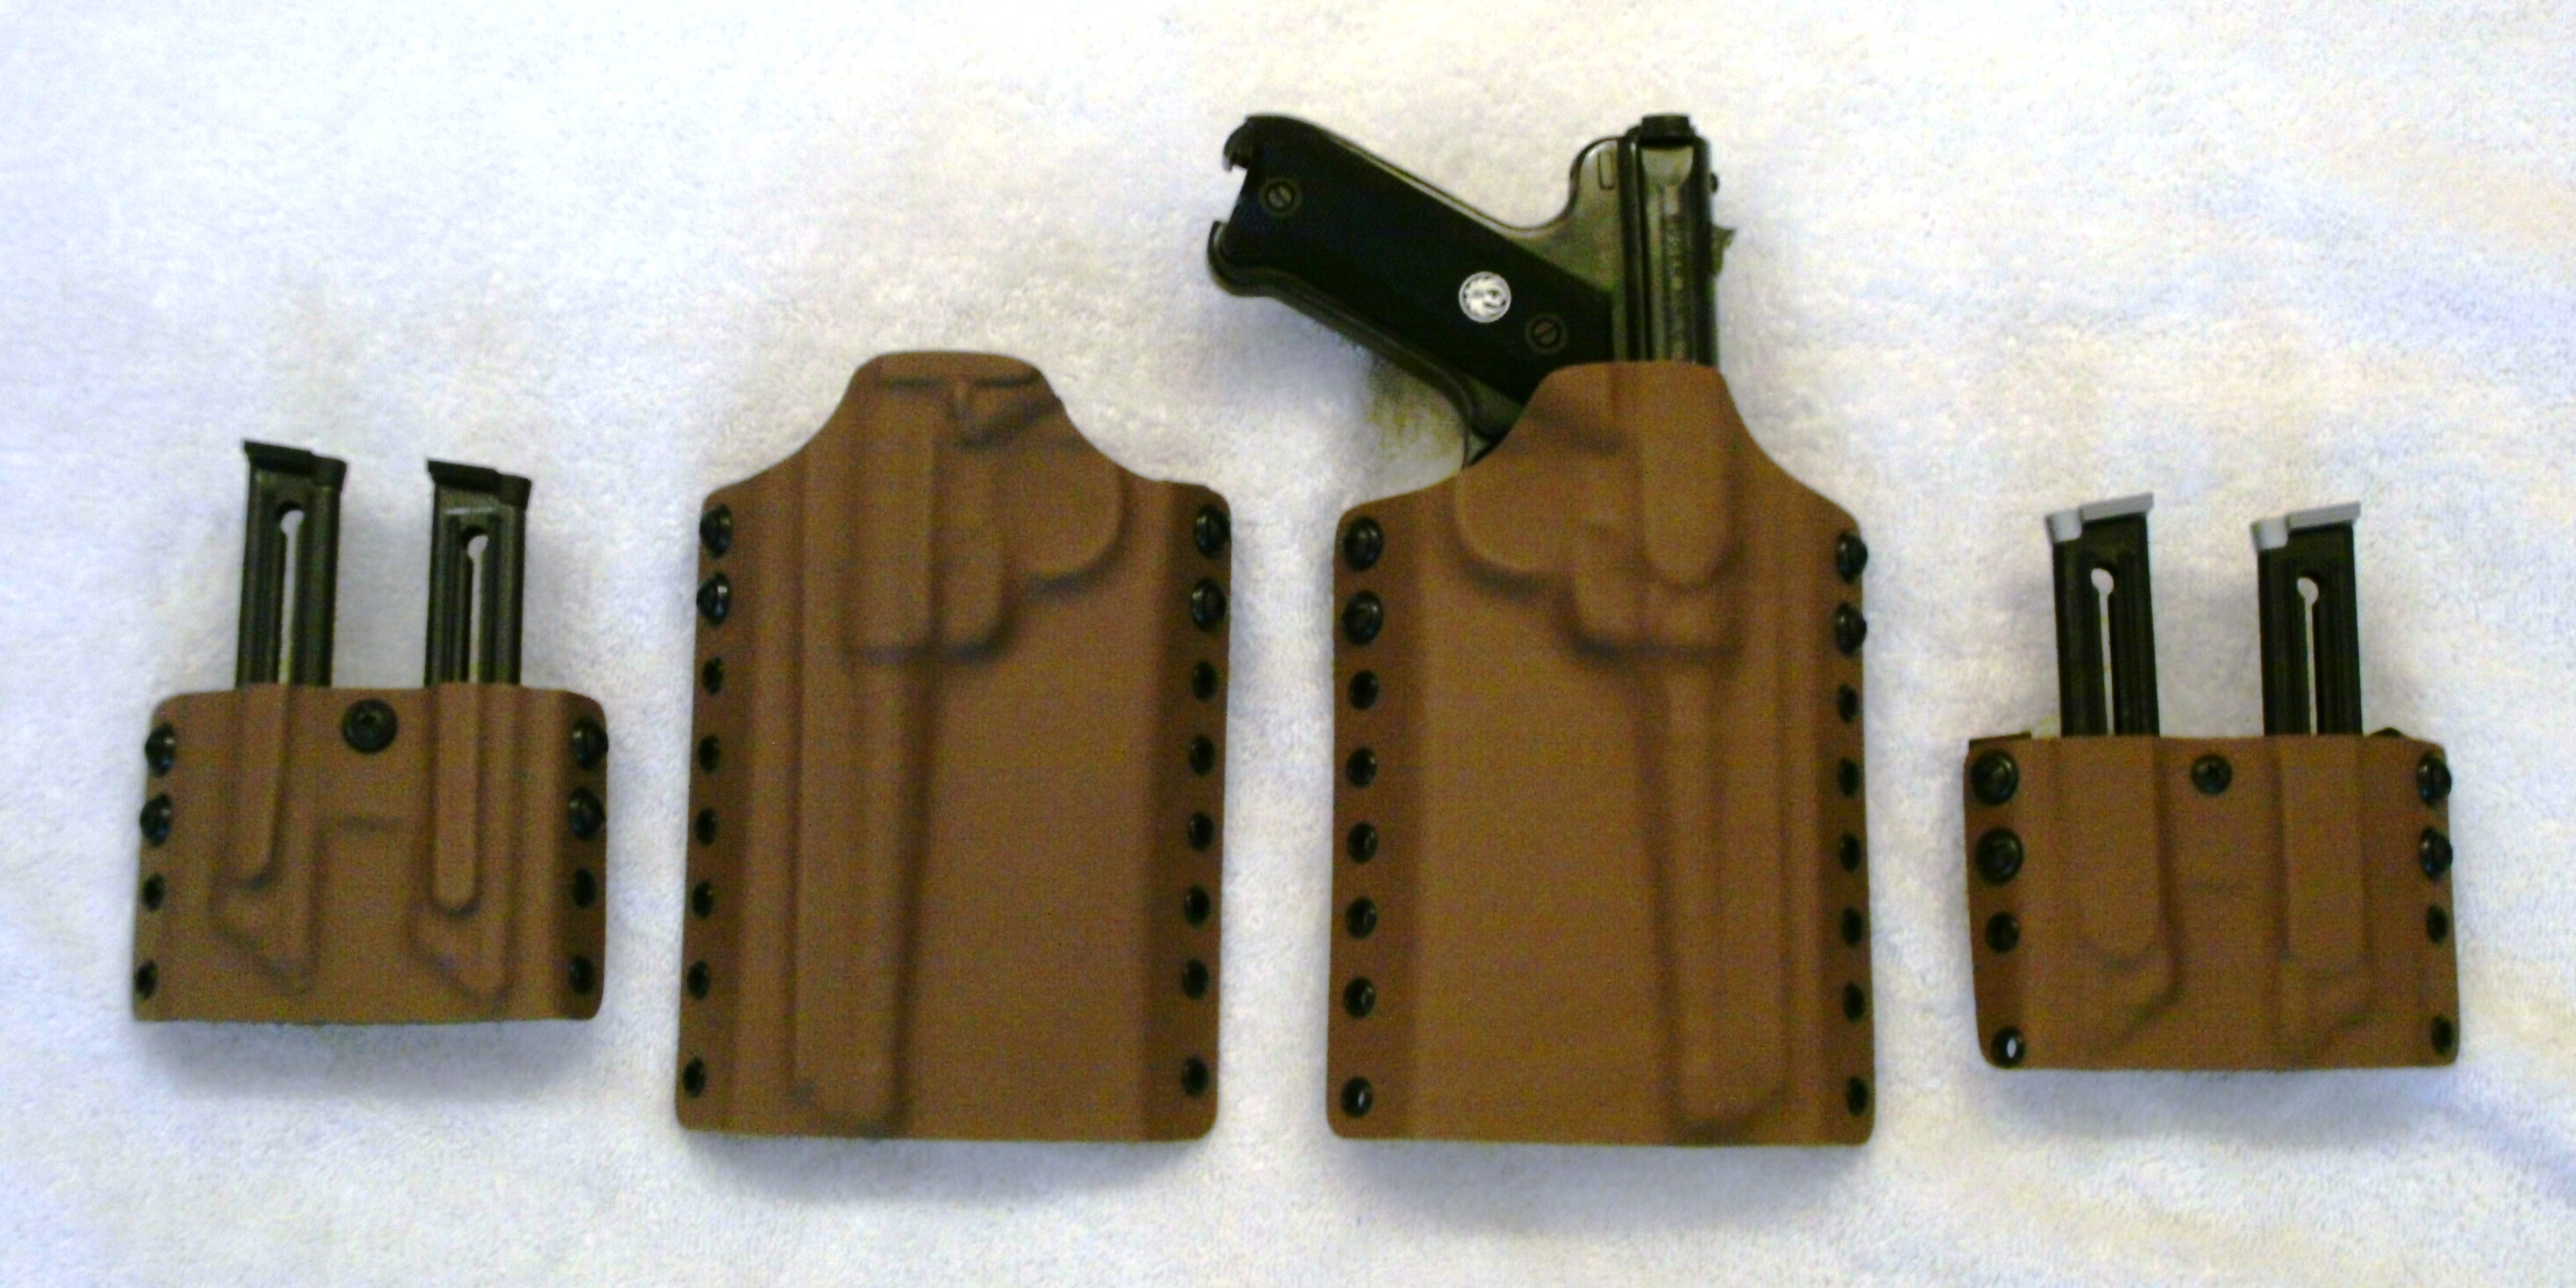 New Holsters for the Ruger Mk II | SlowFacts